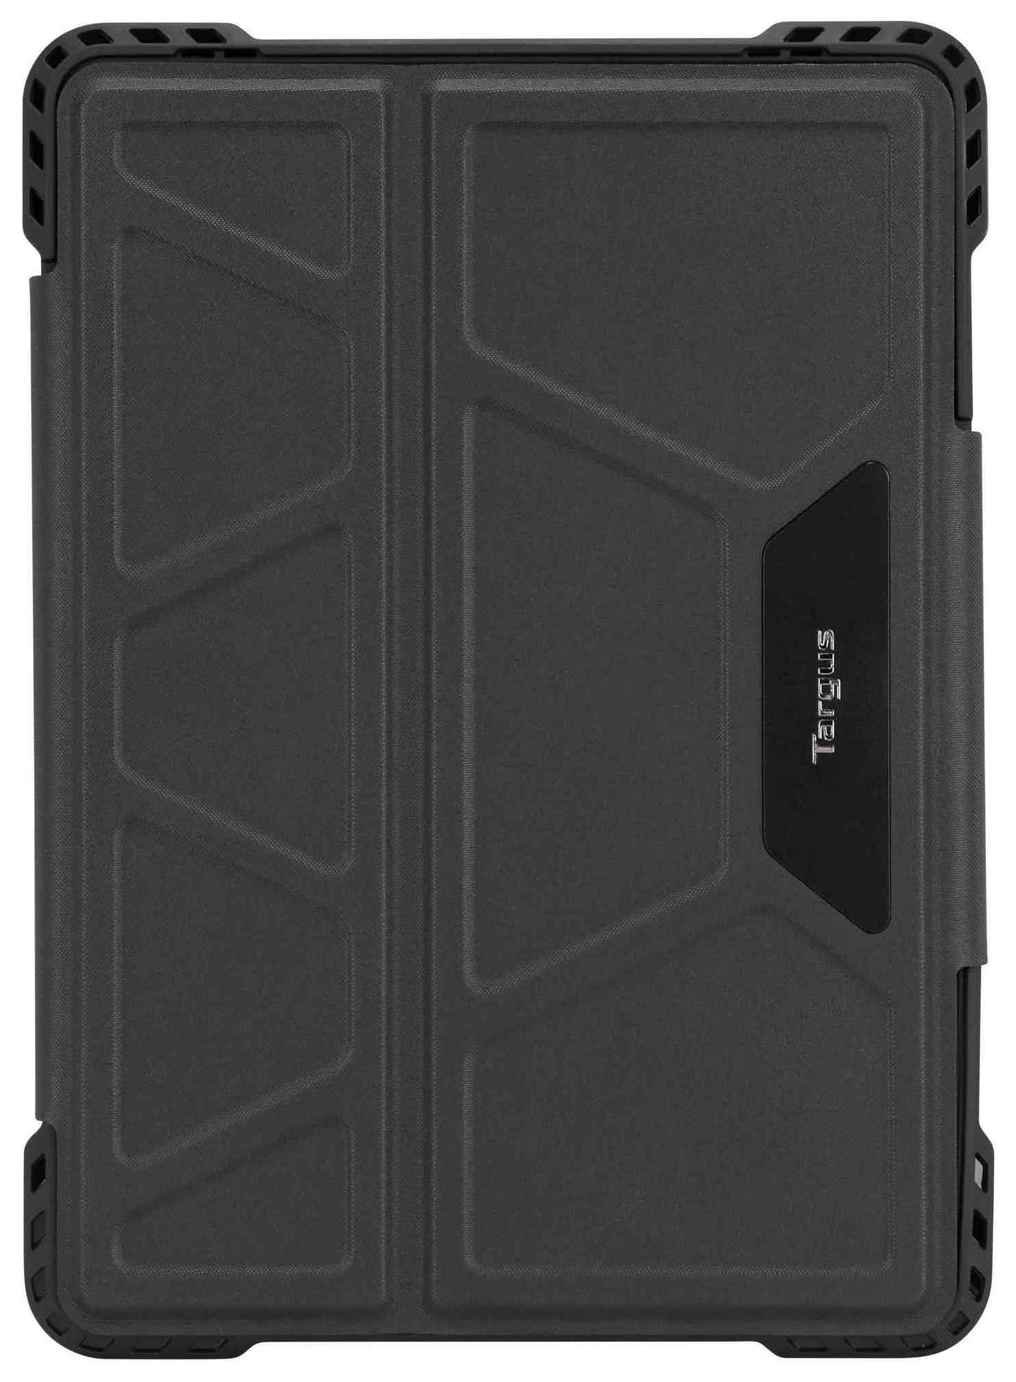 Targus Protek iPad 2018 Air 1/2 Tablet Case - Black